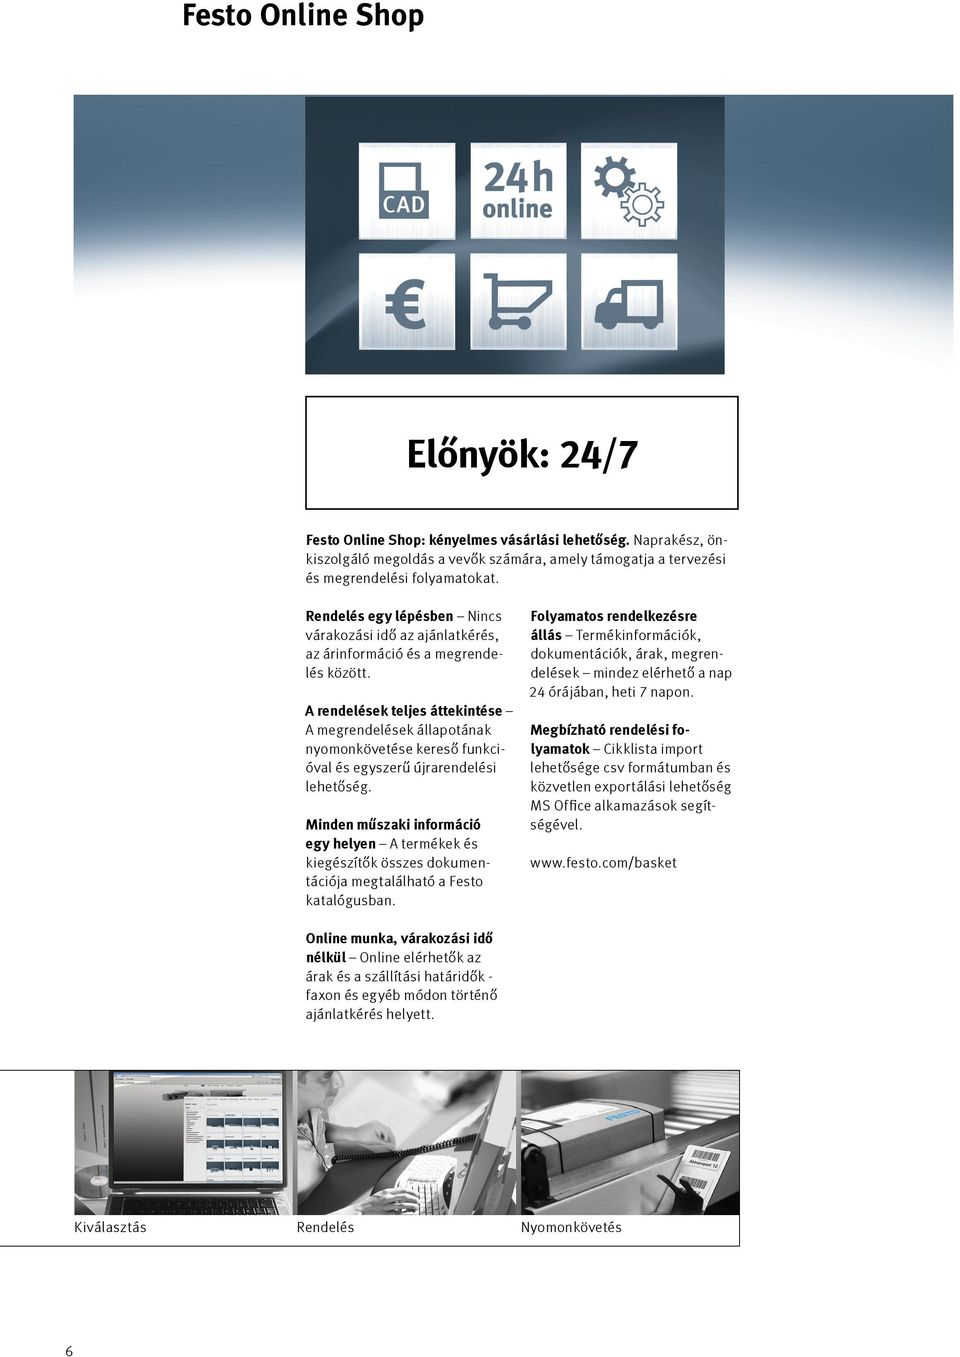 design, és megrendelési planning, folyamatokat. purchasing and maintenance work. This speeds up your processes and ensures maximum transparency and reliability.